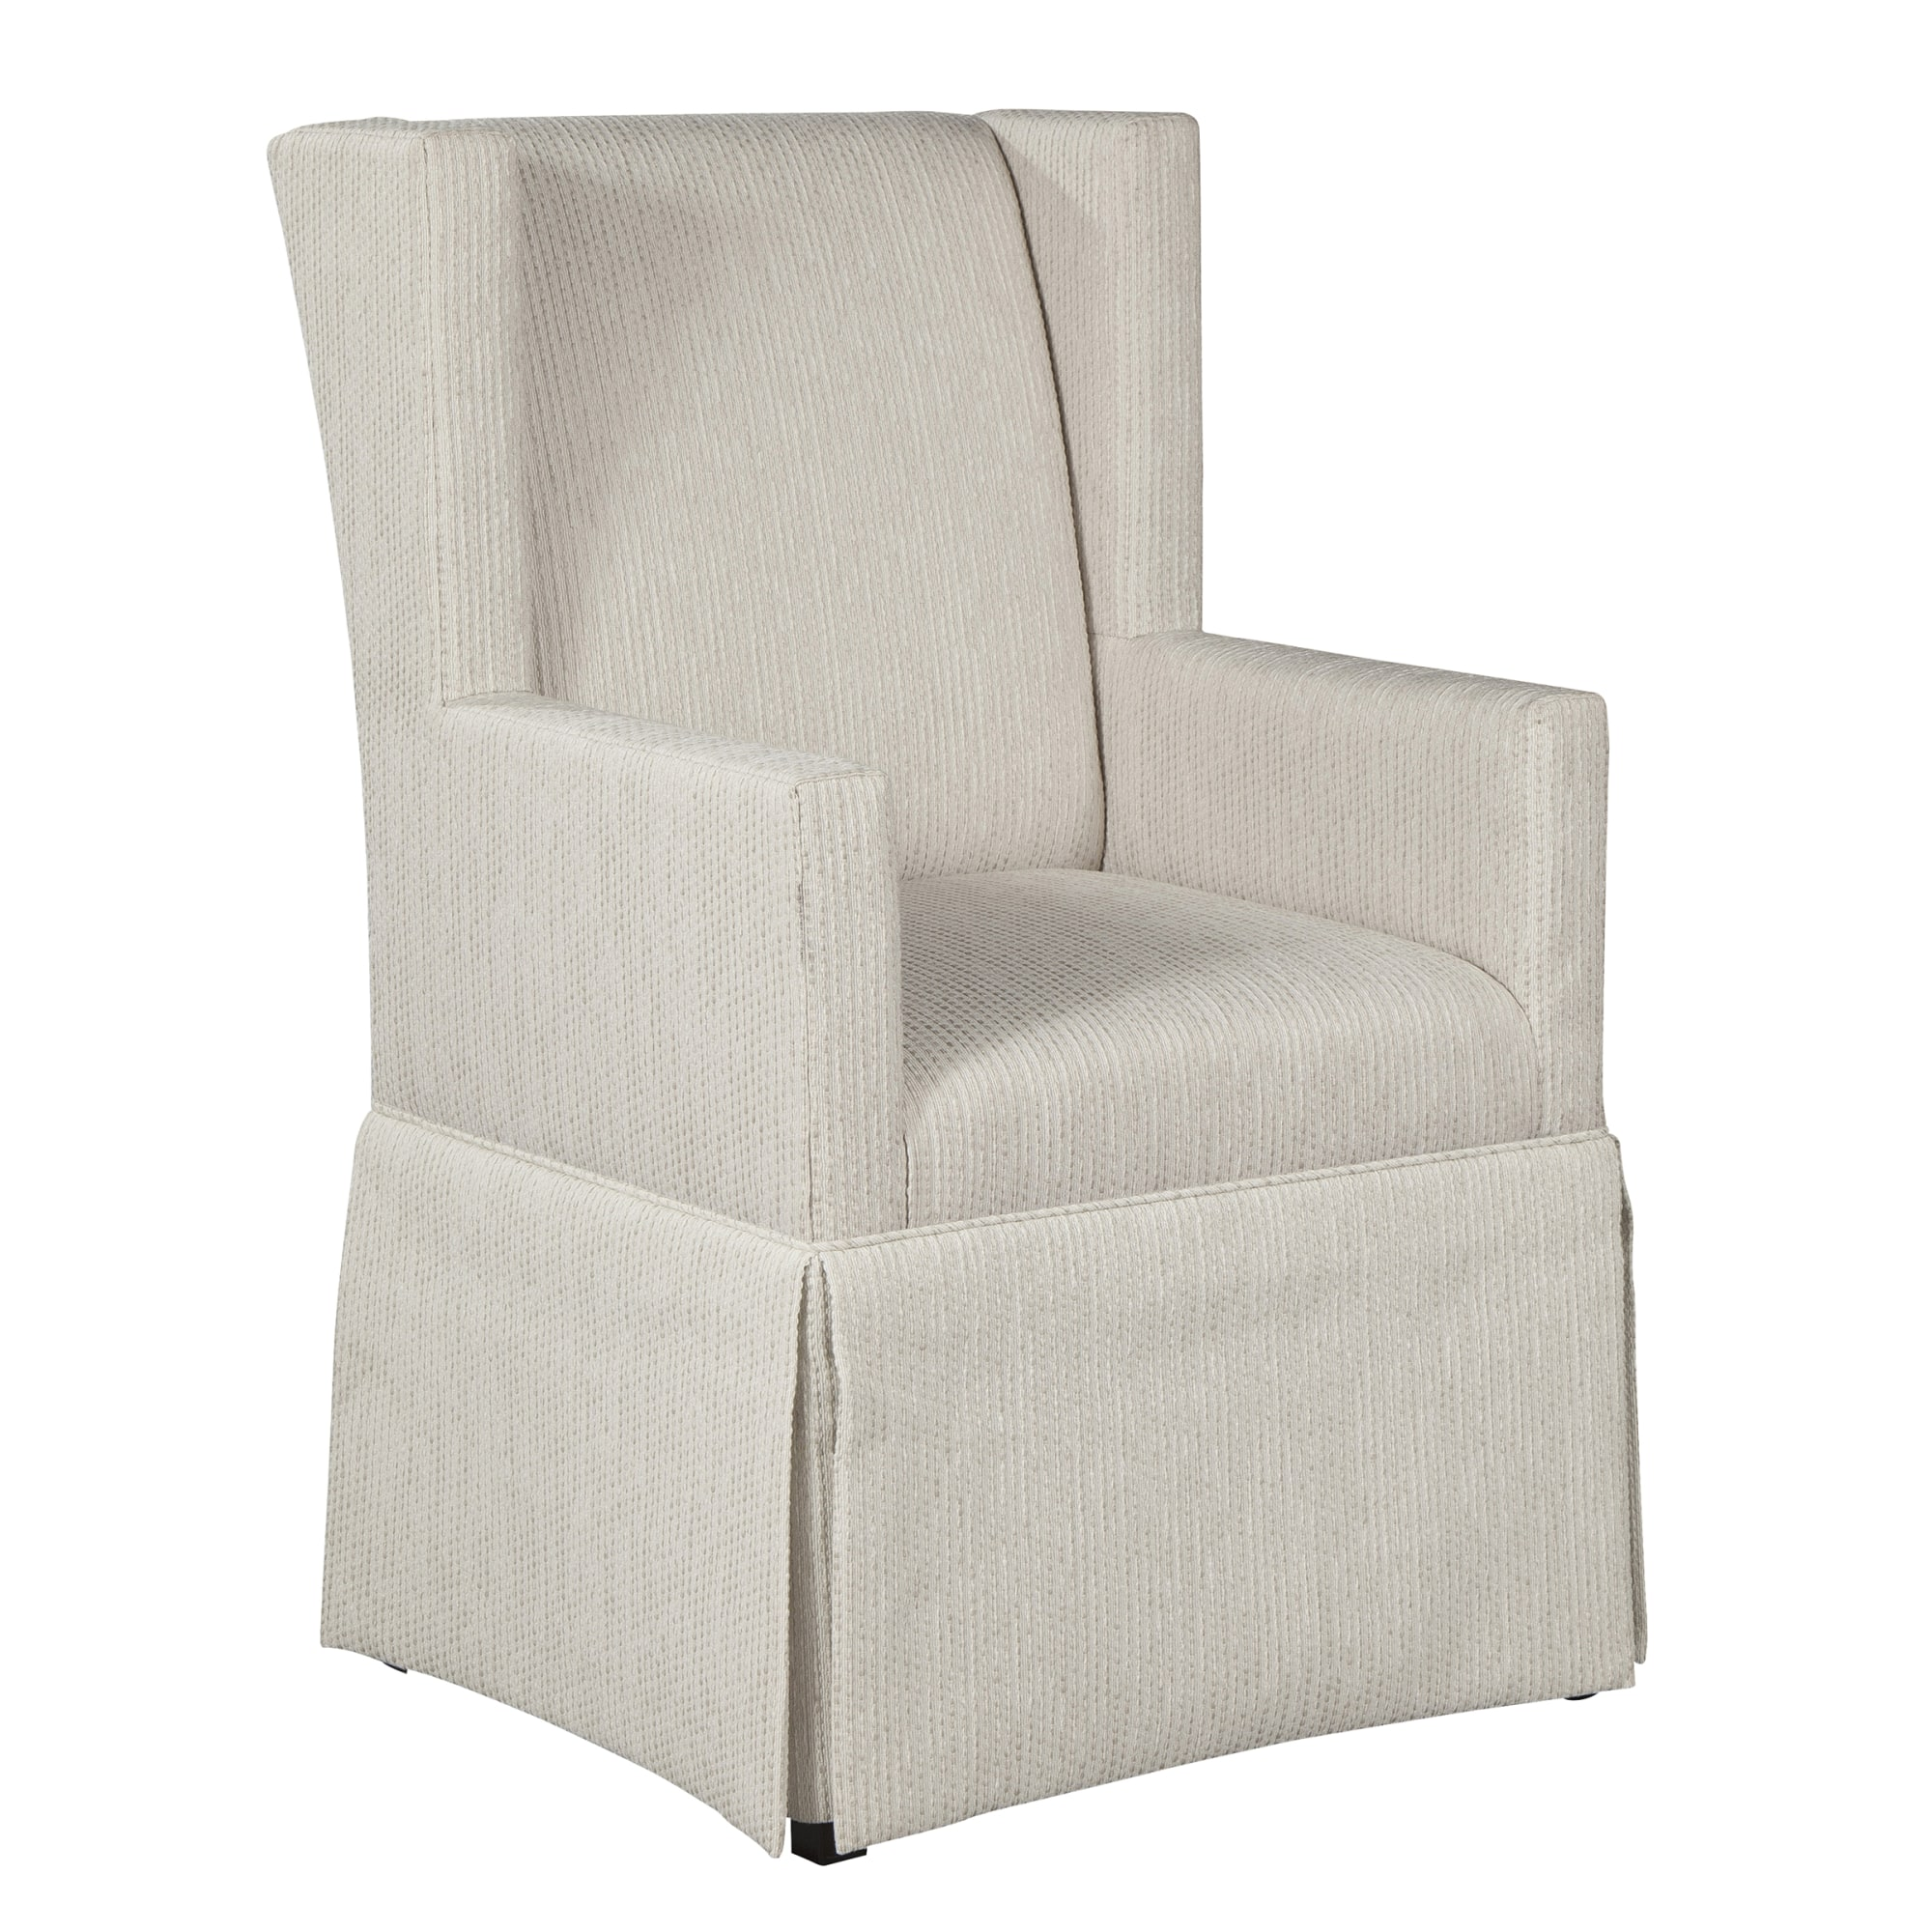 Image for 7279 Kaytlin Arm Chair from Hekman Official Website